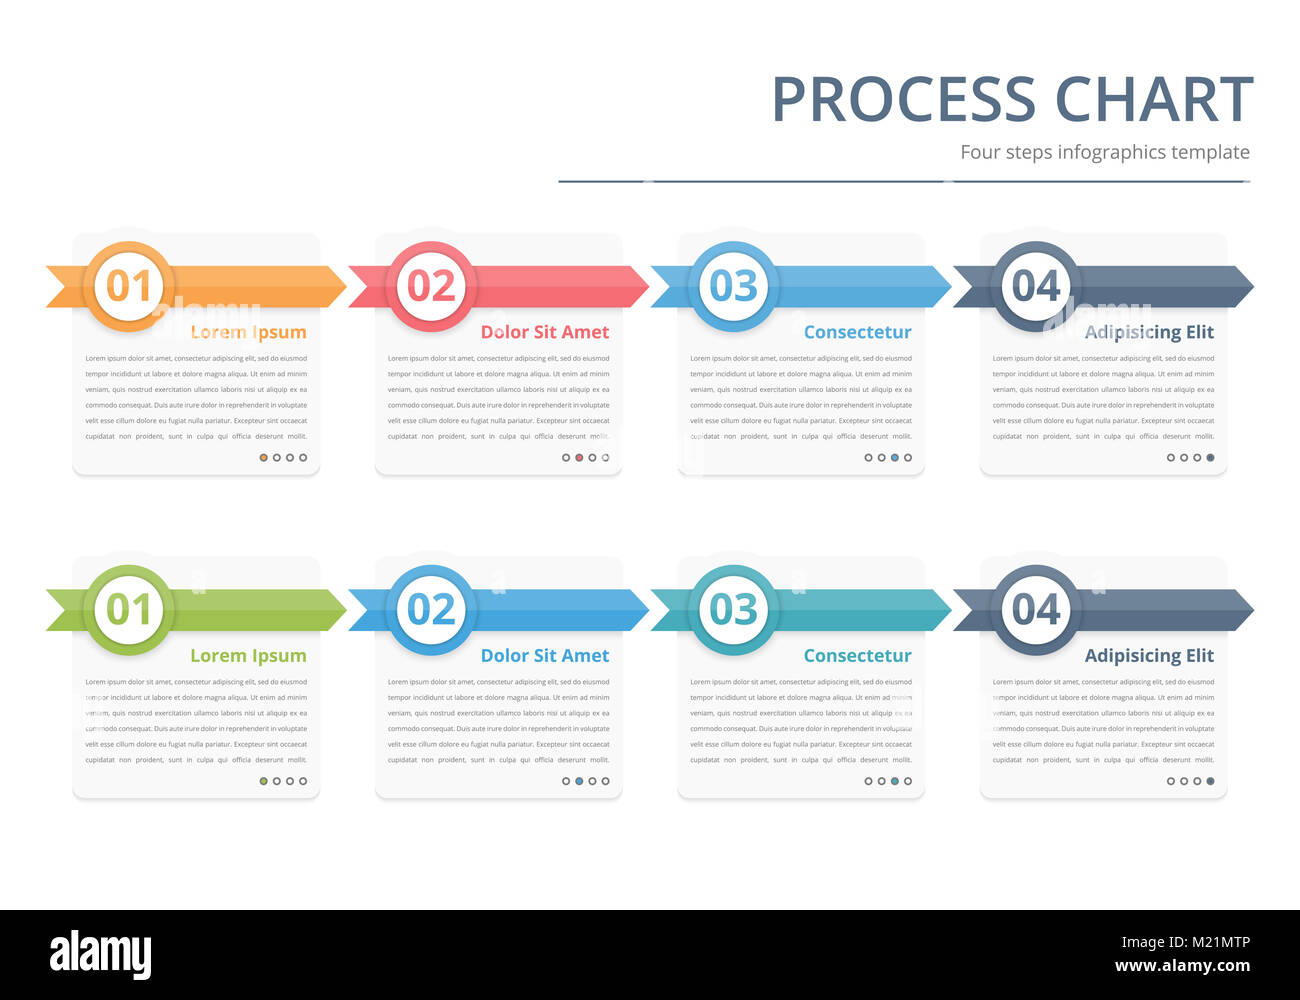 Process chart flow chart template infographics design elements process chart flow chart template infographics design elements with numbers and text business infographics workflow steps options vector eps10 cheaphphosting Gallery